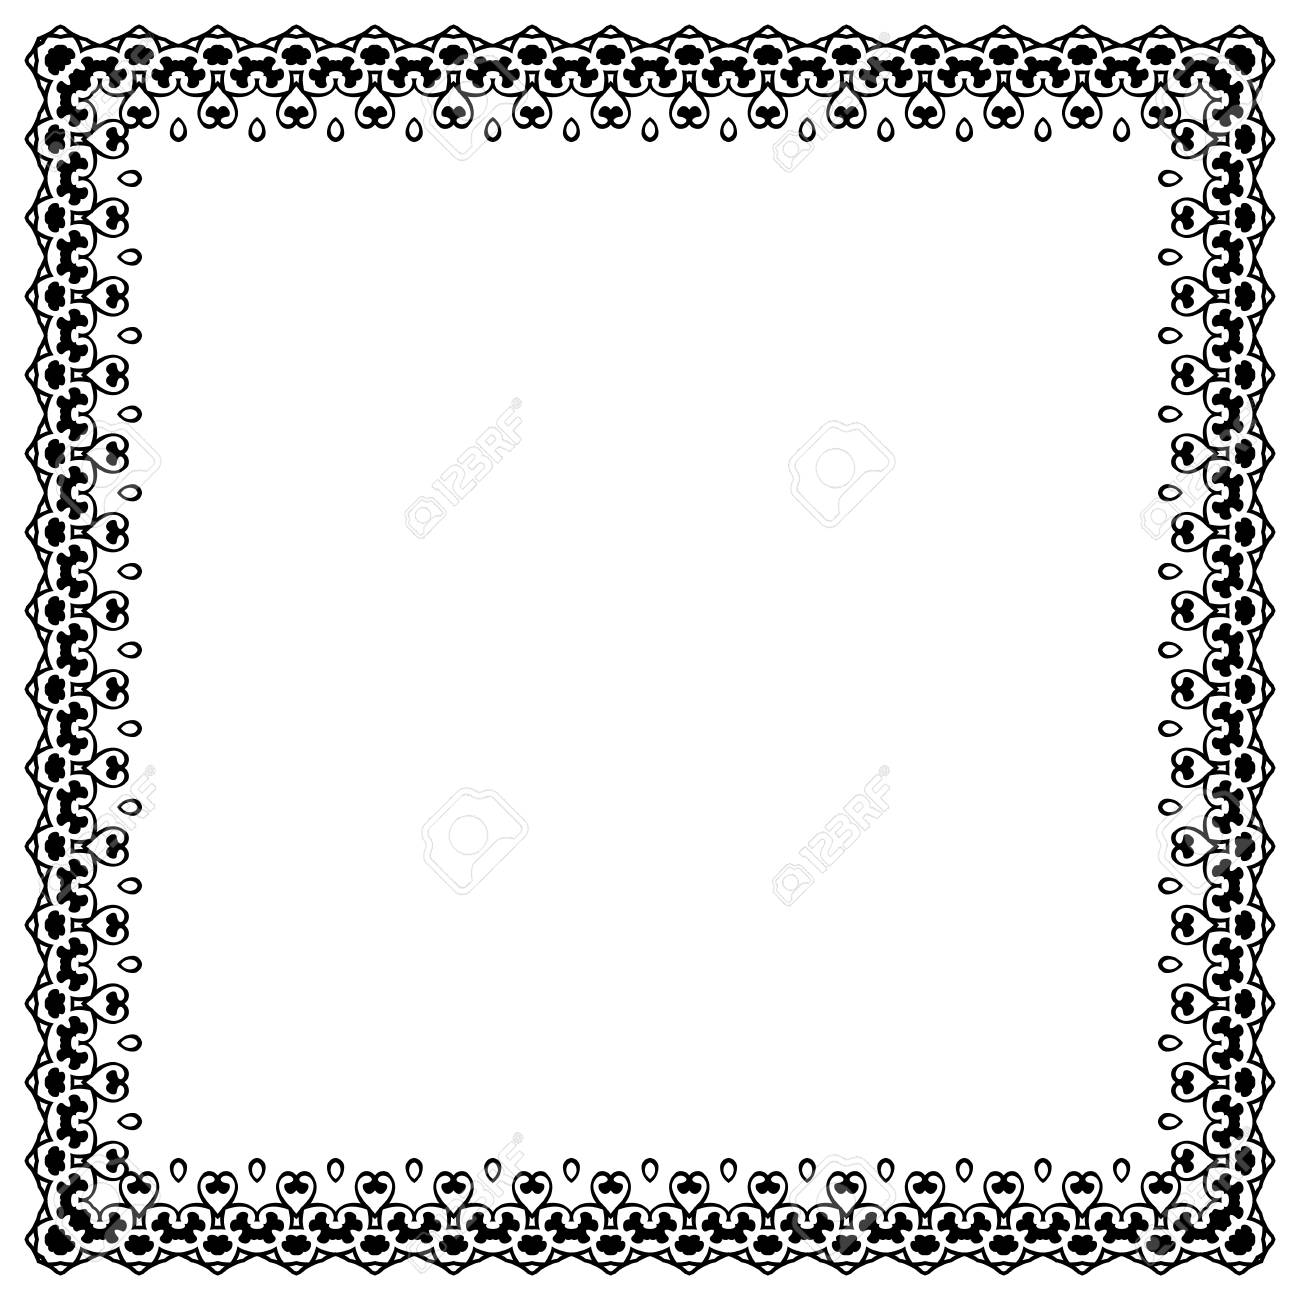 Decorative Vintage Frame Border Pattern Stock Vector